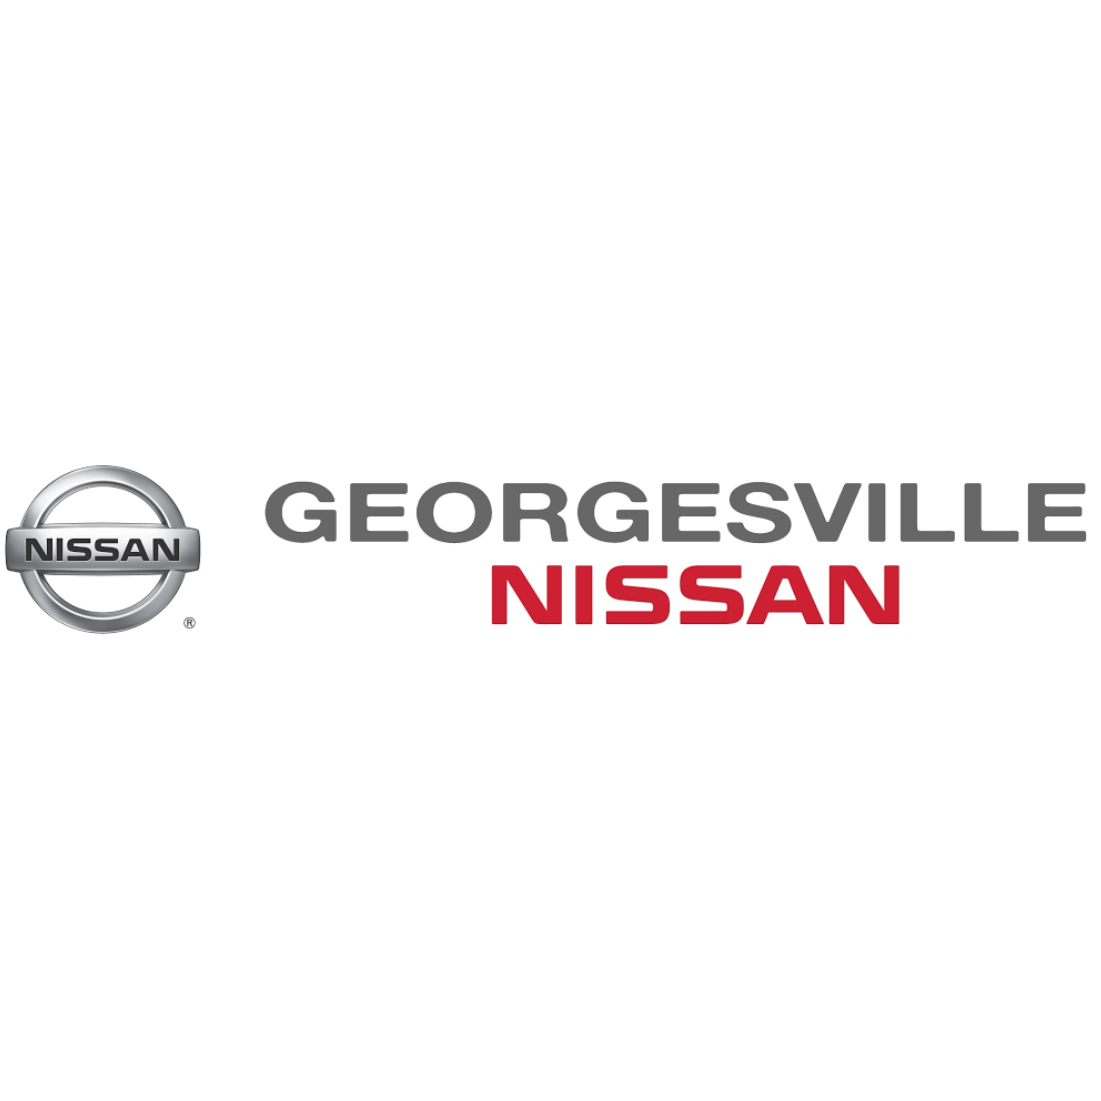 Georgesville Nissan - Columbus, OH 43228 - (614)369-4444 | ShowMeLocal.com